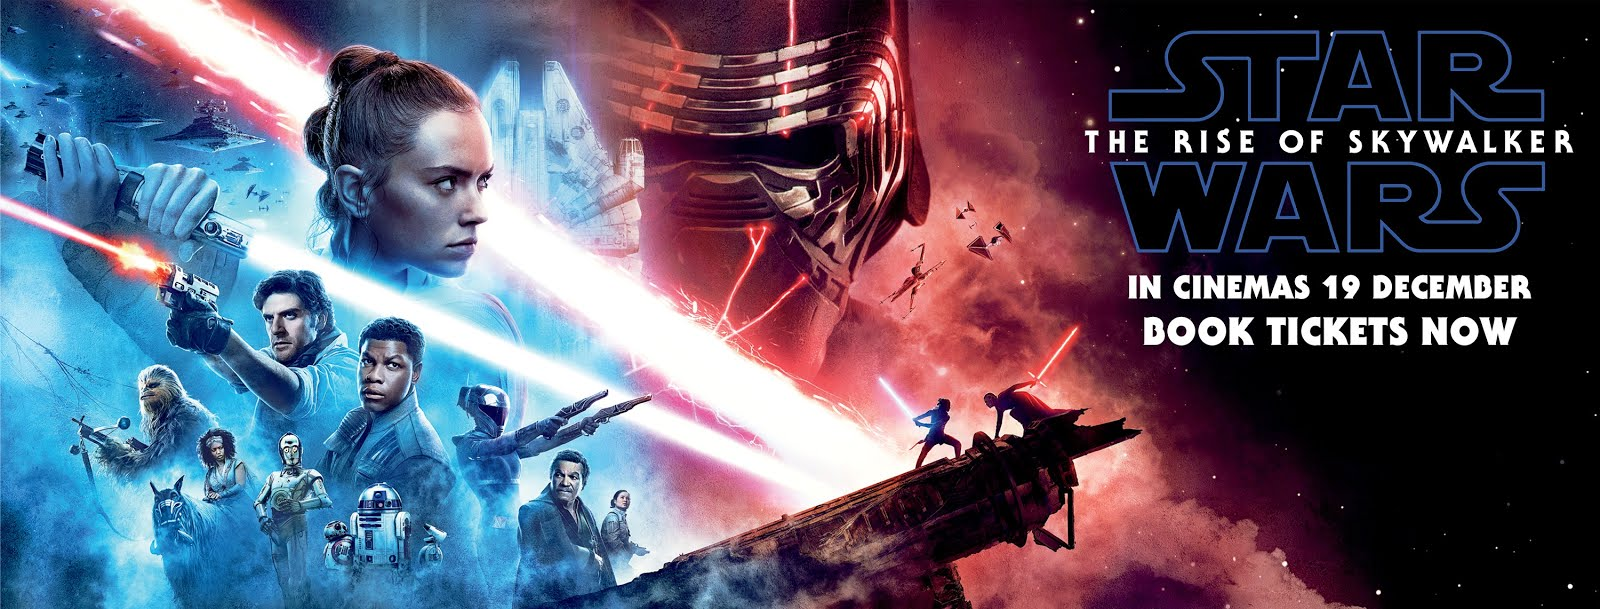 OUT OF HYPERSPACE AND INTO UK CINEMAS FROM DECEMBER 19TH, 2019. BOOK NOW!